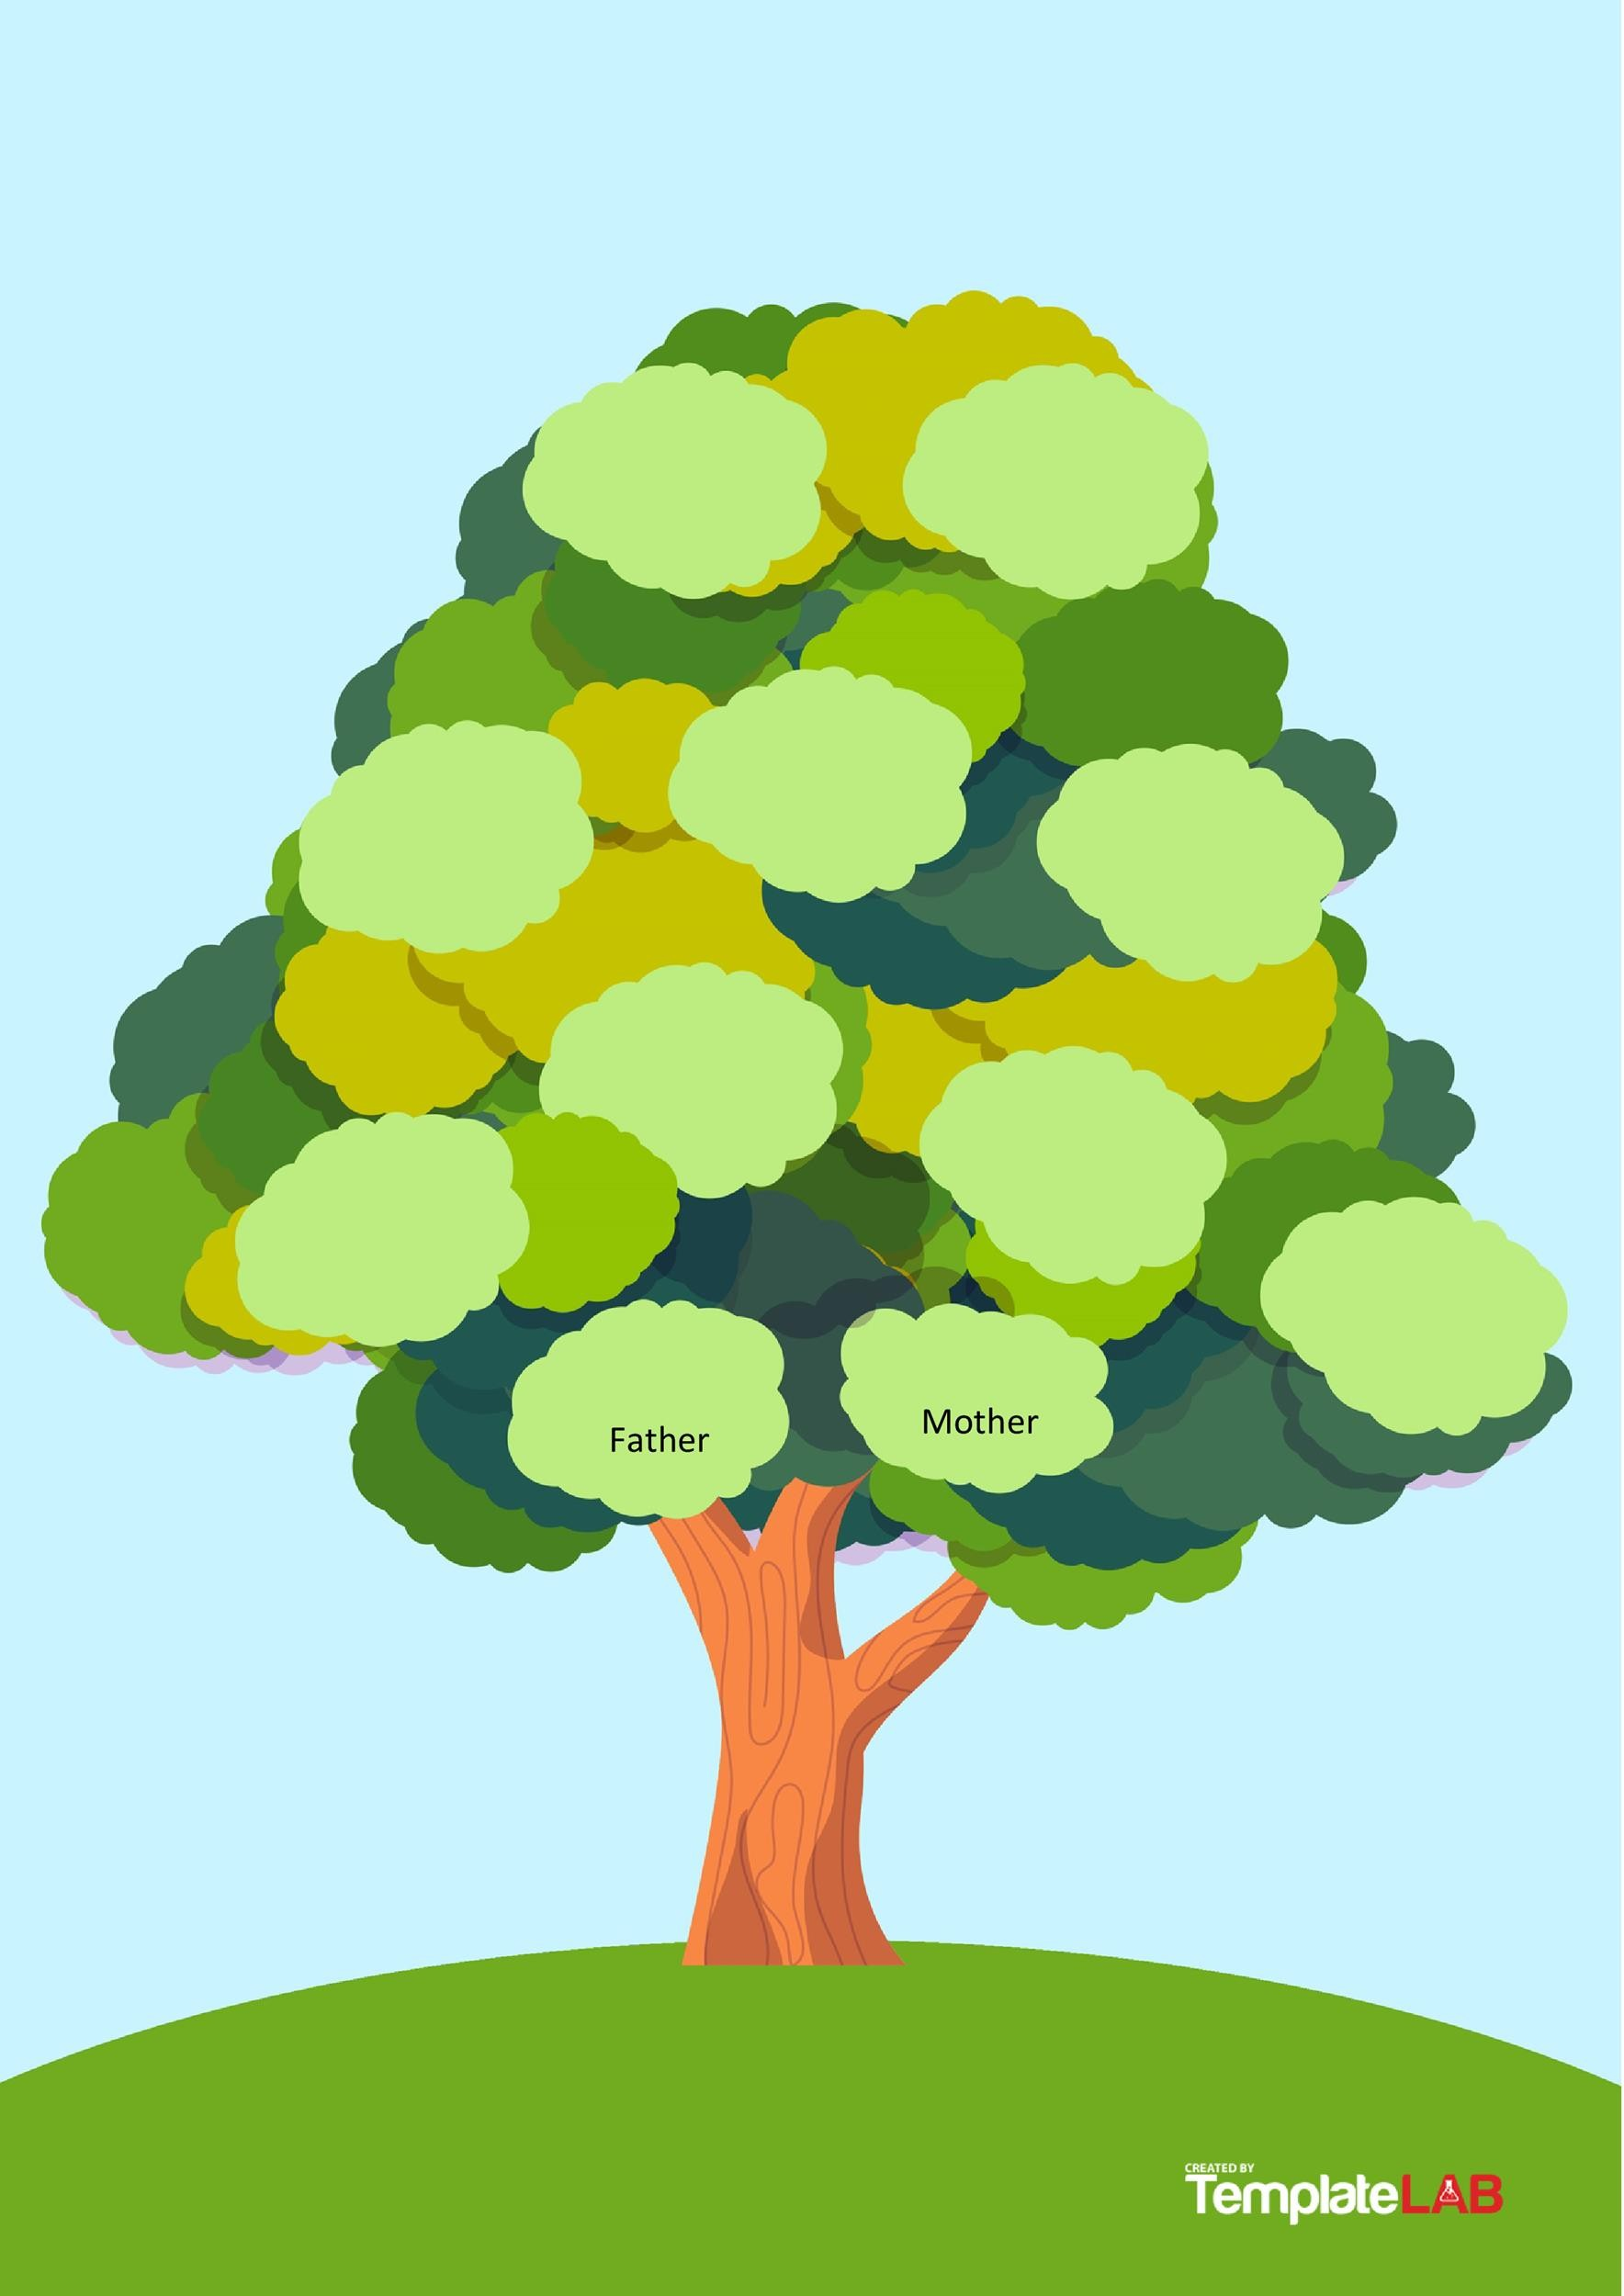 Family Tree Pictures Template from templatelab.com